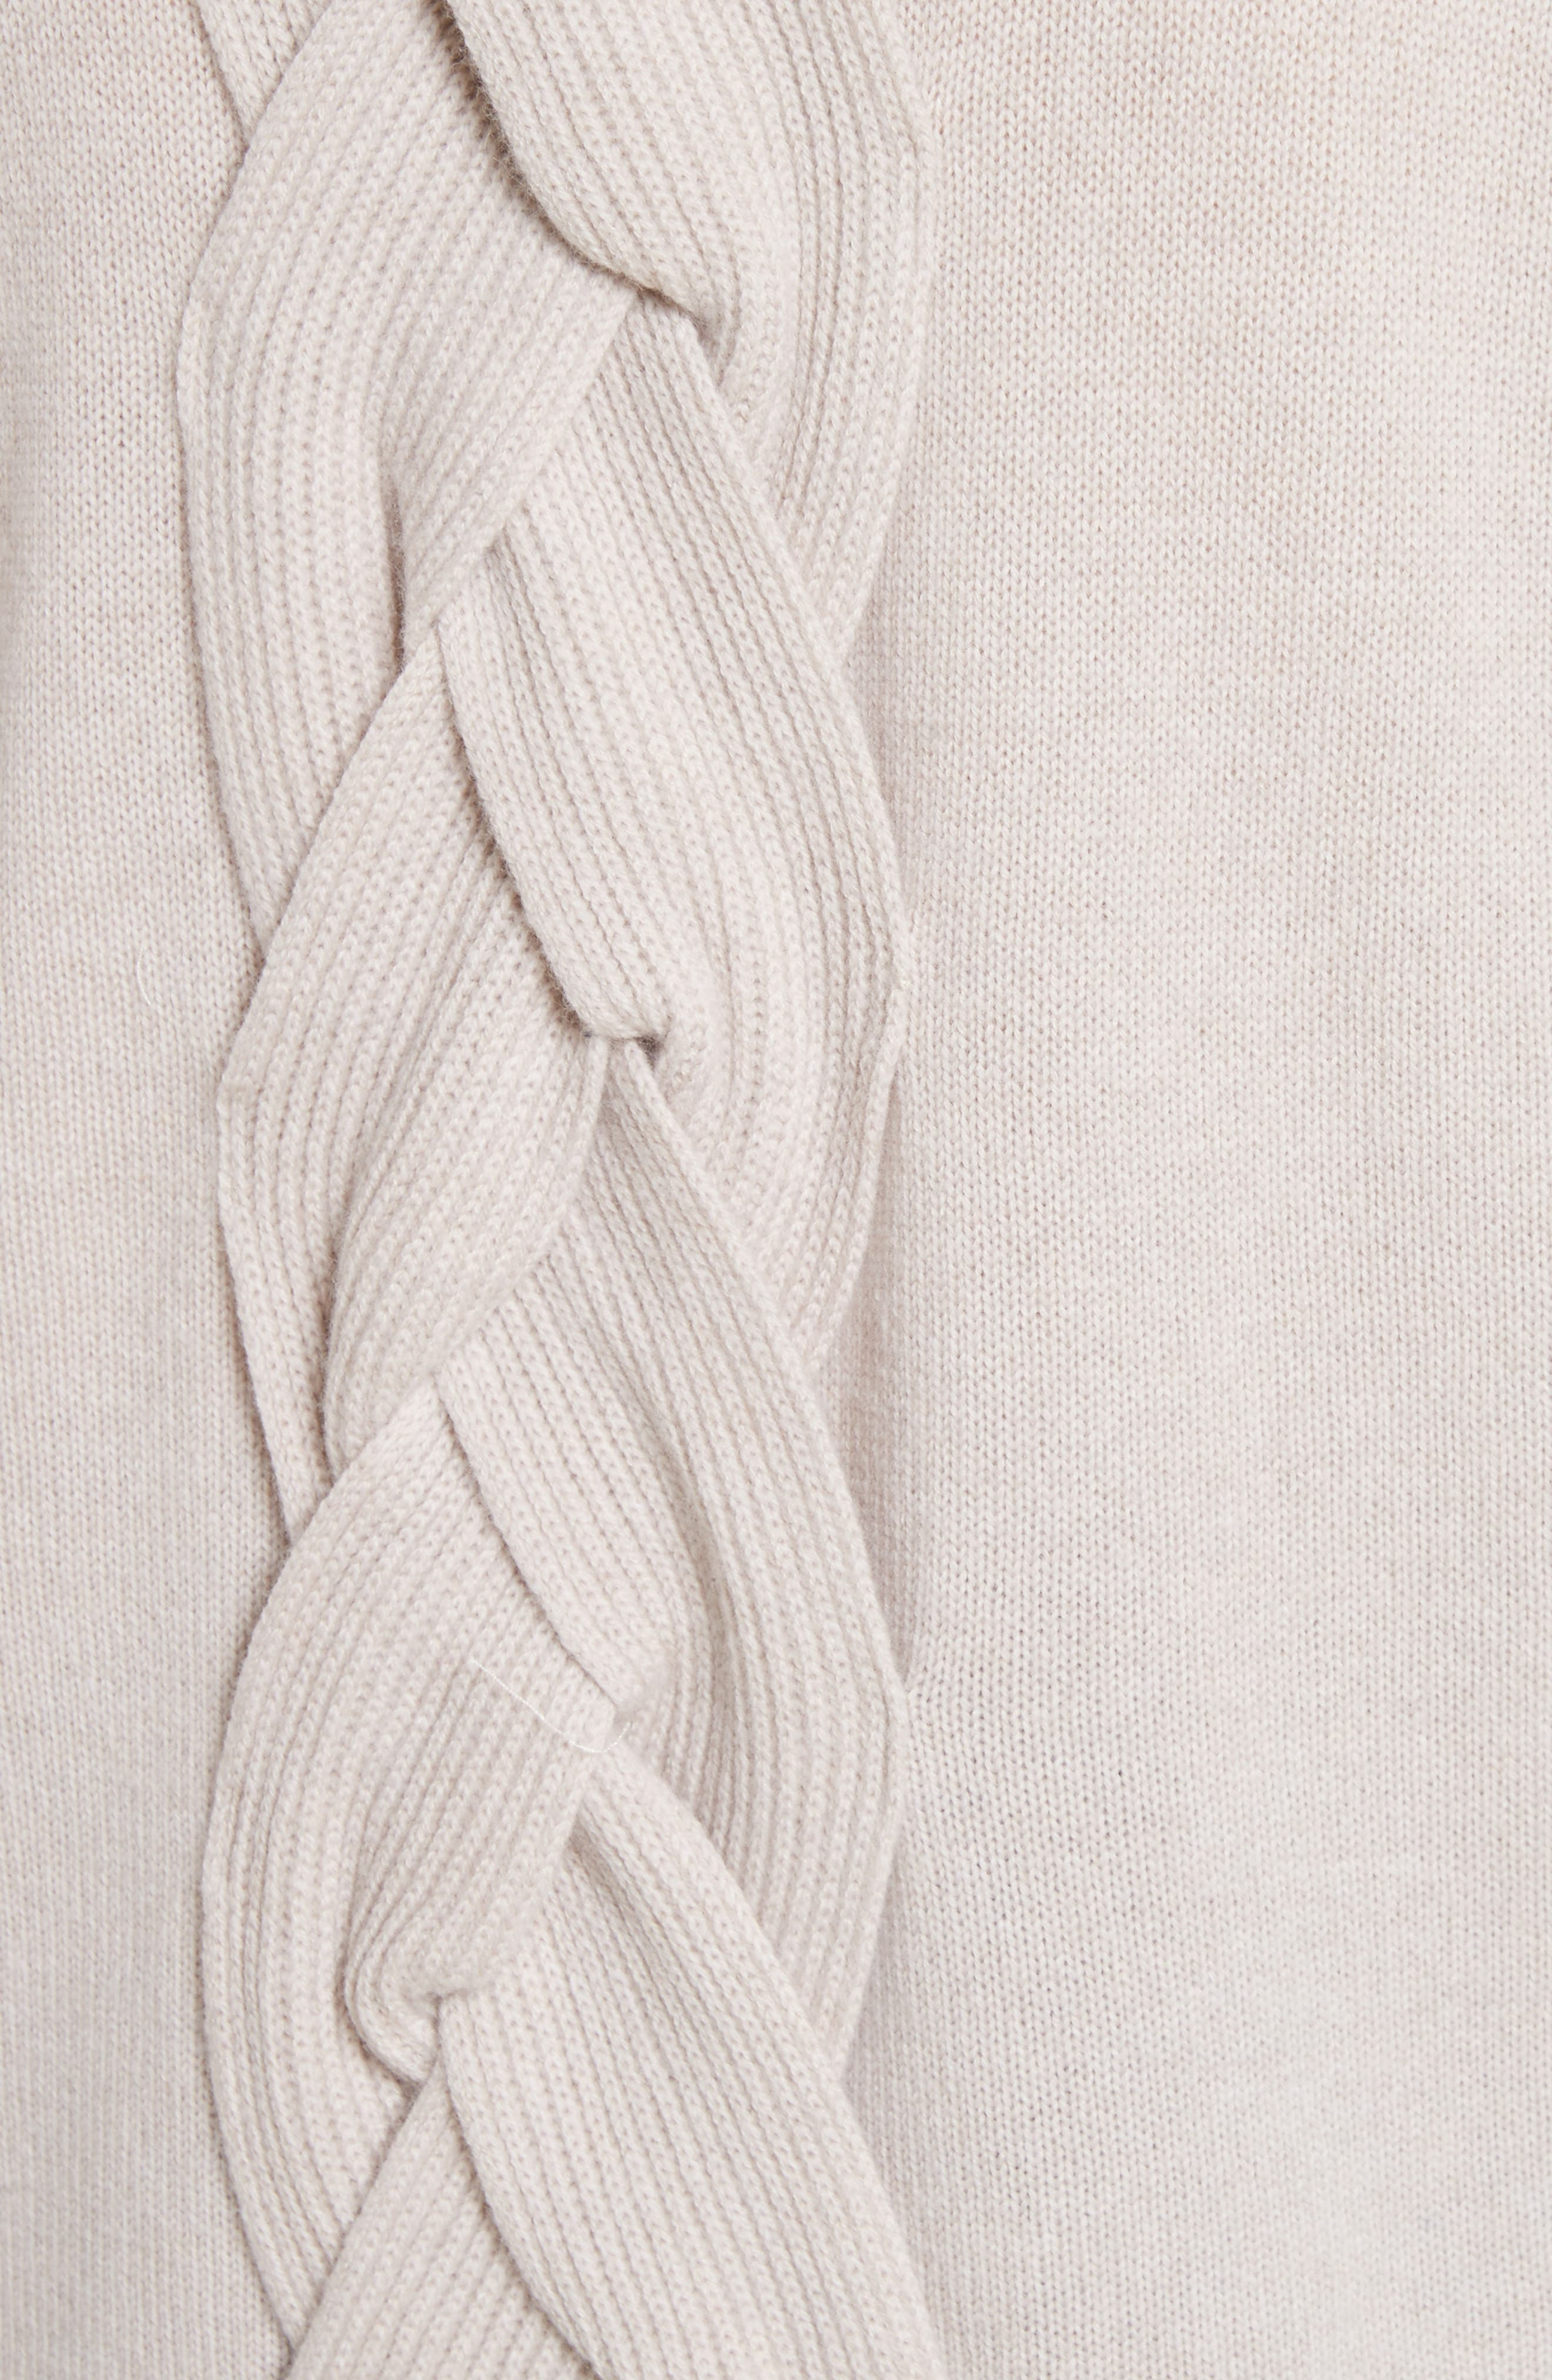 Fisherman Cable Knit Sweater,                             Alternate thumbnail 5, color,                             Oatmeal